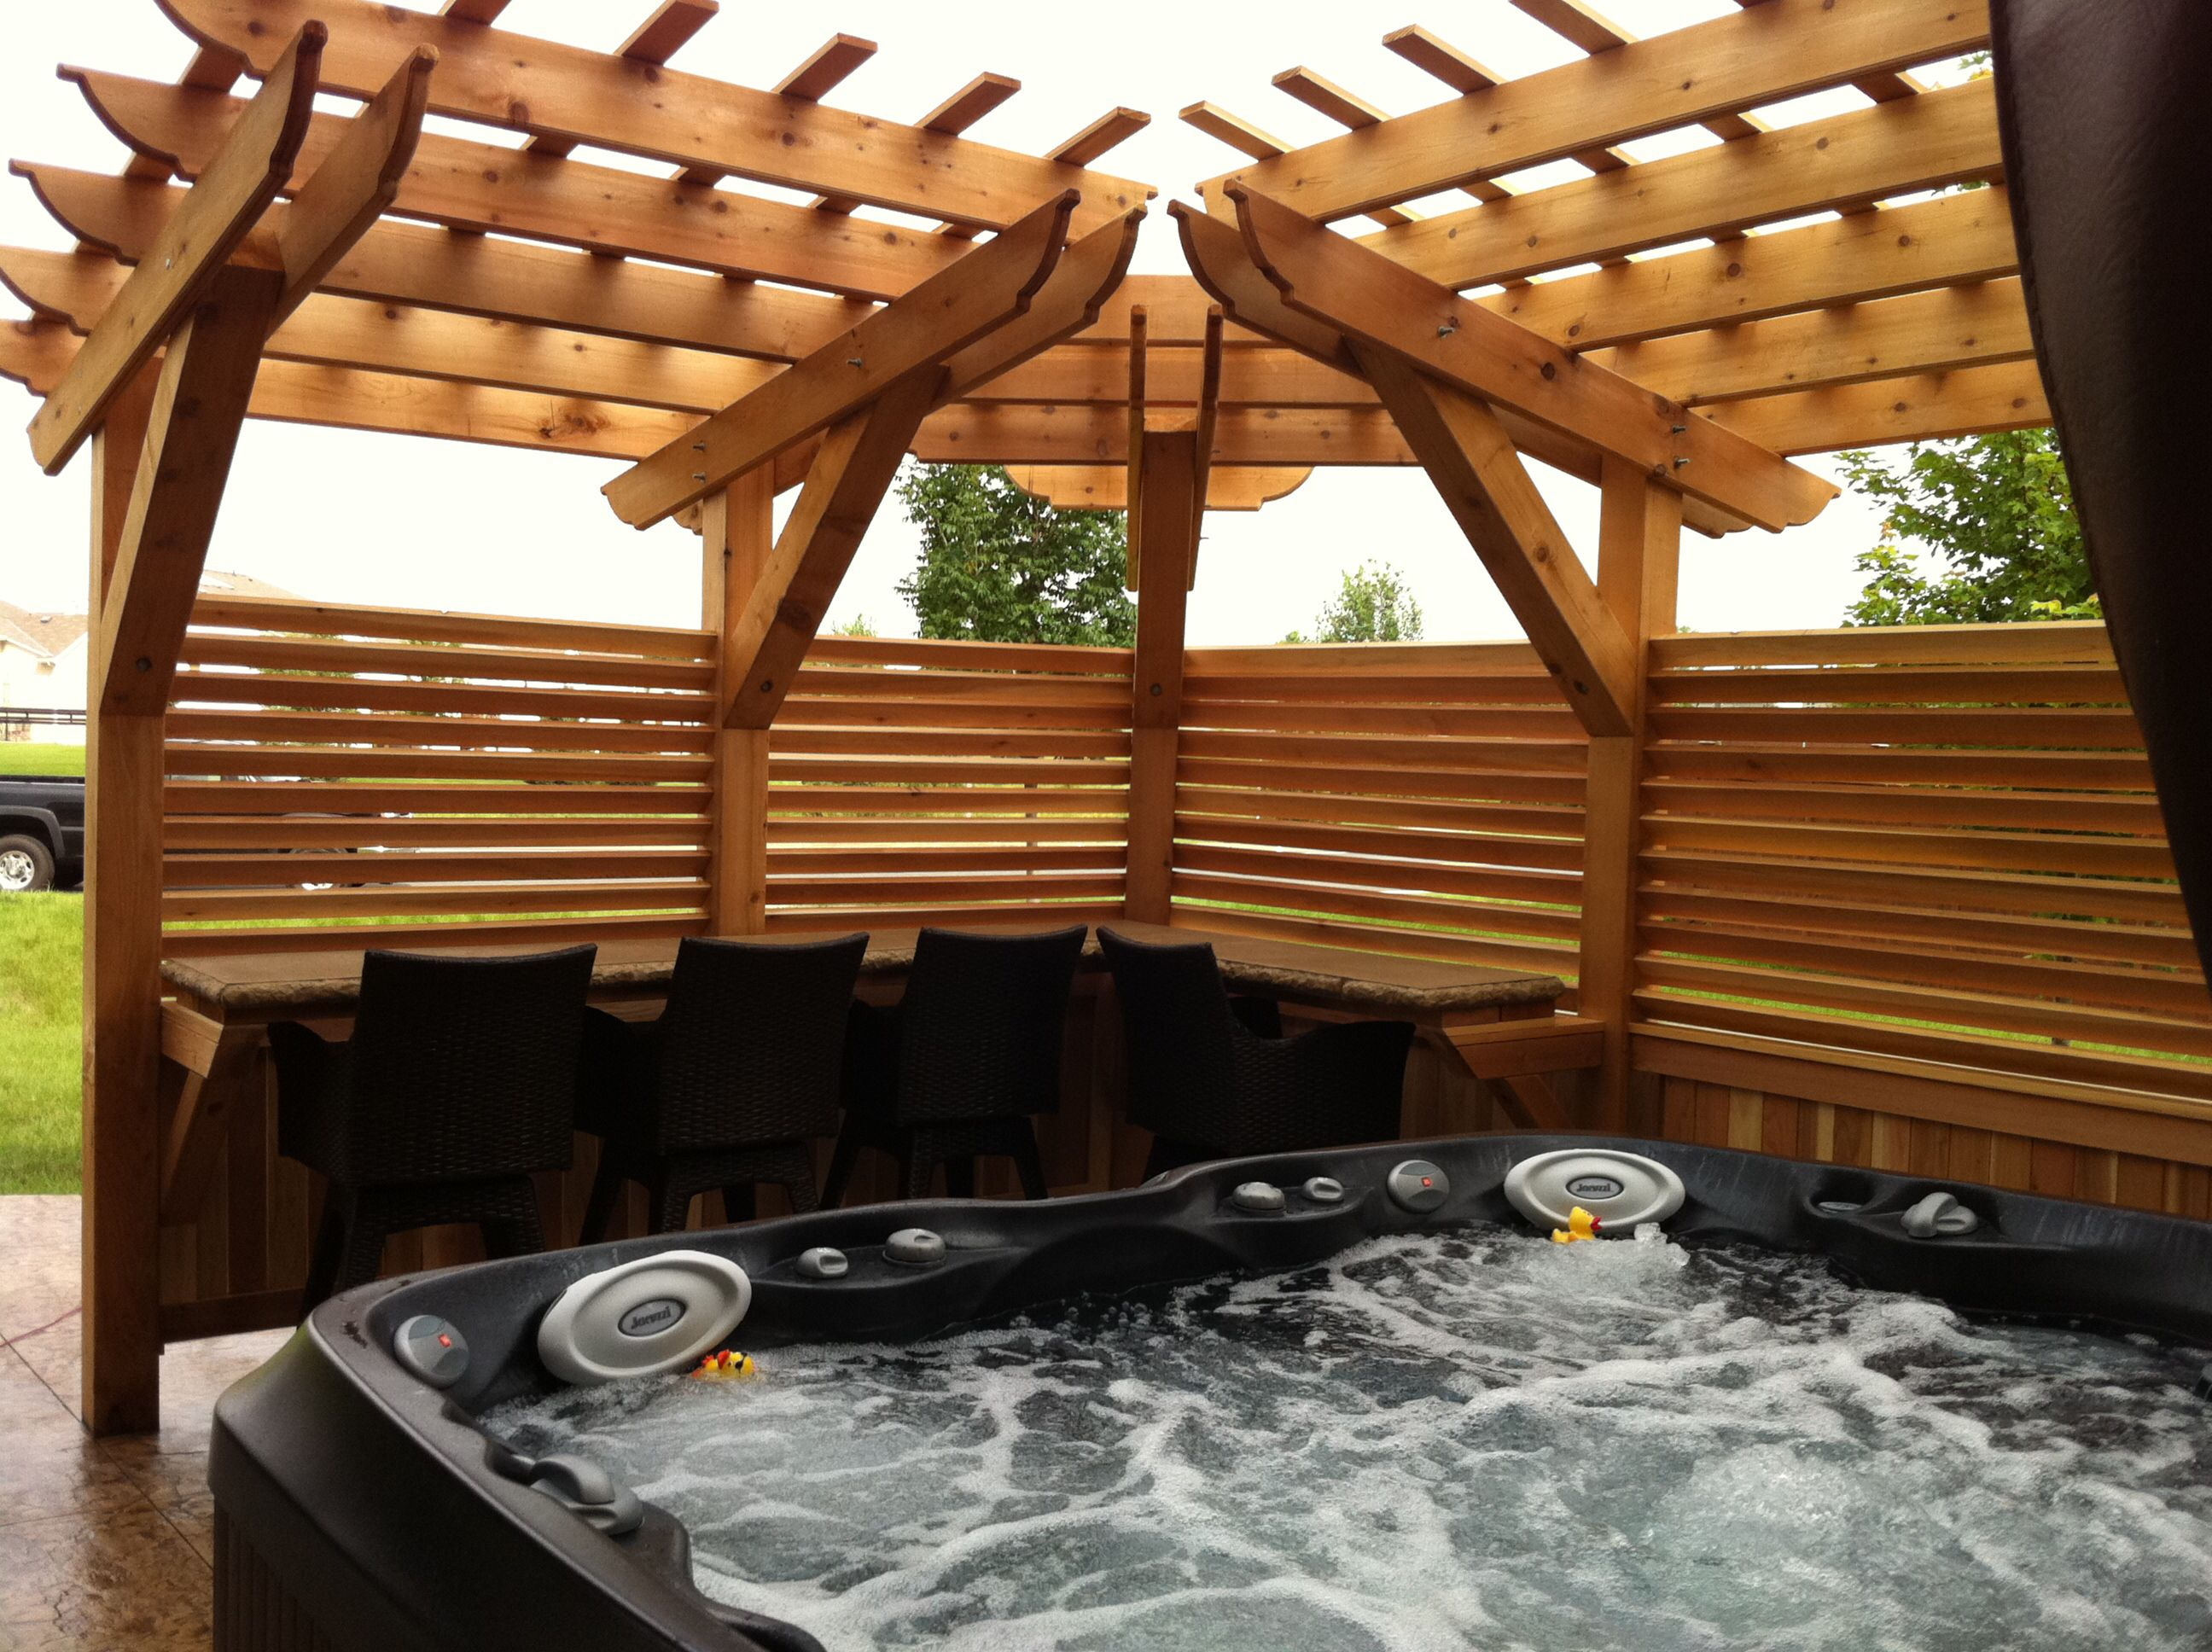 Stamped Concrete Hot Tub Patio With Custom Pergola For Privacy And Concrete  Bar Countertop